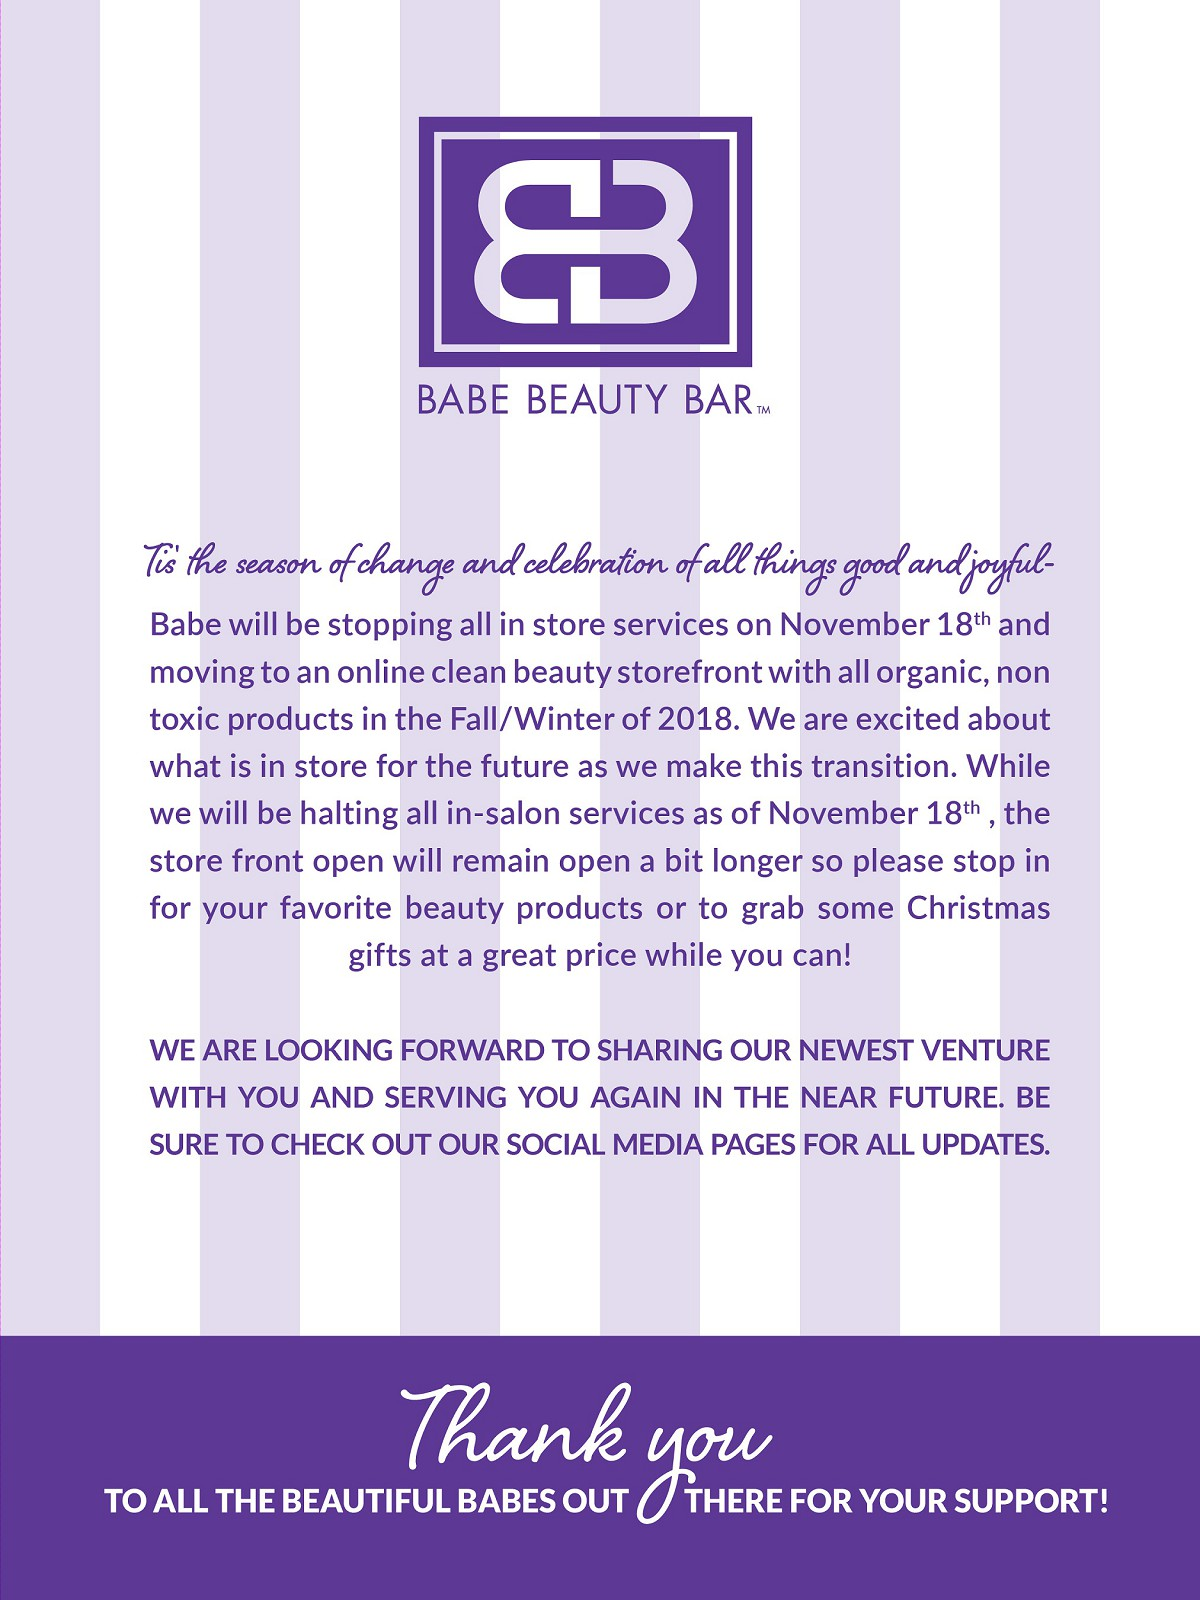 Tis the season of change and celebration of all things good and joyful-Babe will be stopping all in store services on November 18th and moving to an online clean beauty storefront with all organic, non toxic products in the Fall/Winter of 2018. We are excited about what is in store for the future as we make this transition. While we will be halting all in-salon services as of November 18th , the store front open will remain open a bit longer so please stop in for your favorite beauty products or to grab some Christmas gifts at a great price while you can! We are looking forward to sharing our newest venture with you and serving you again in the near future. Be Sure to check out our social media pages for all updates. Thank you to all the beautiful BABES out there for your support!